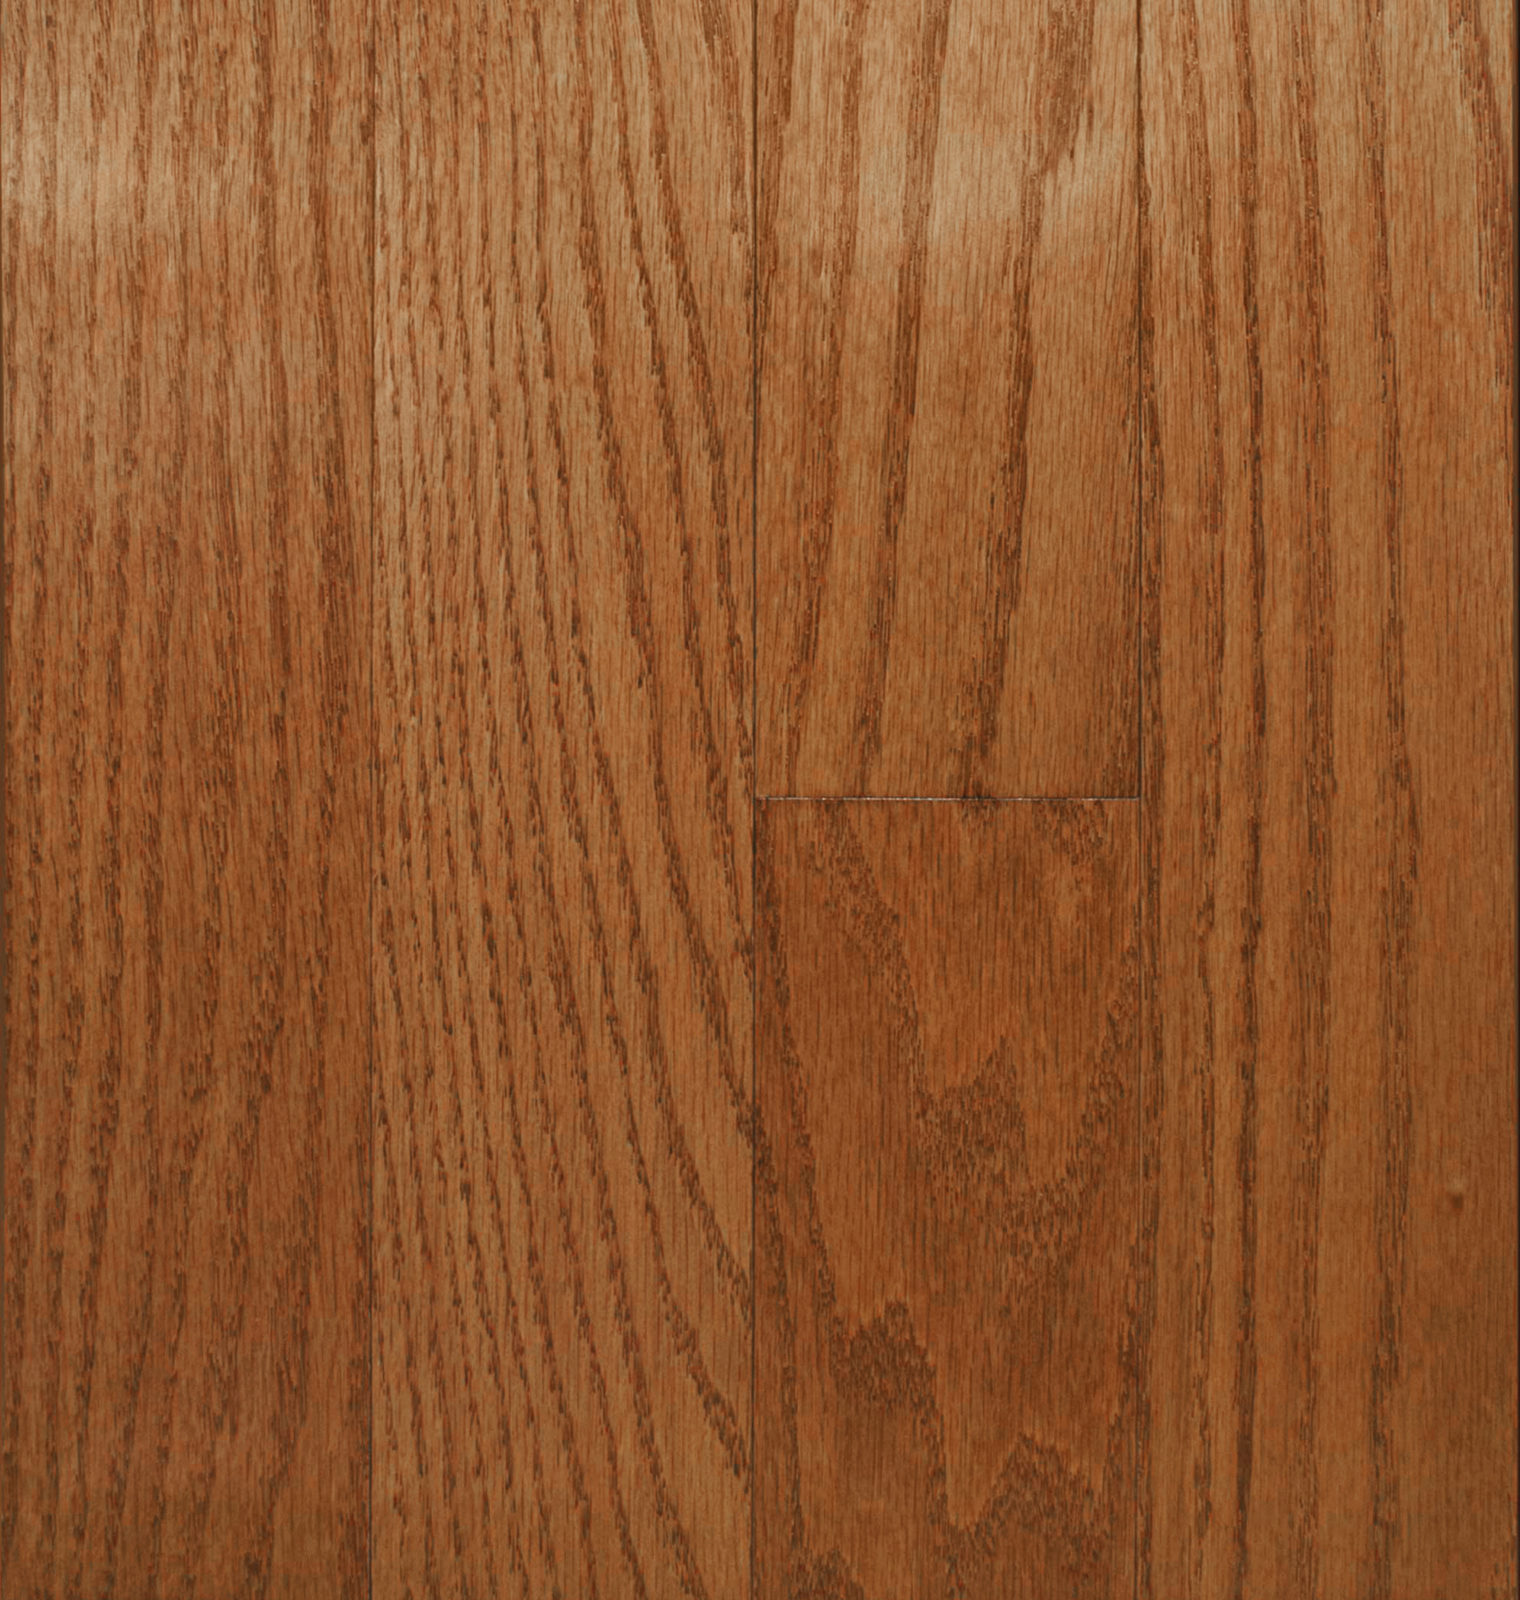 Mohawk engineered wood flooring reviews roy home design for Mohawk hardwood flooring